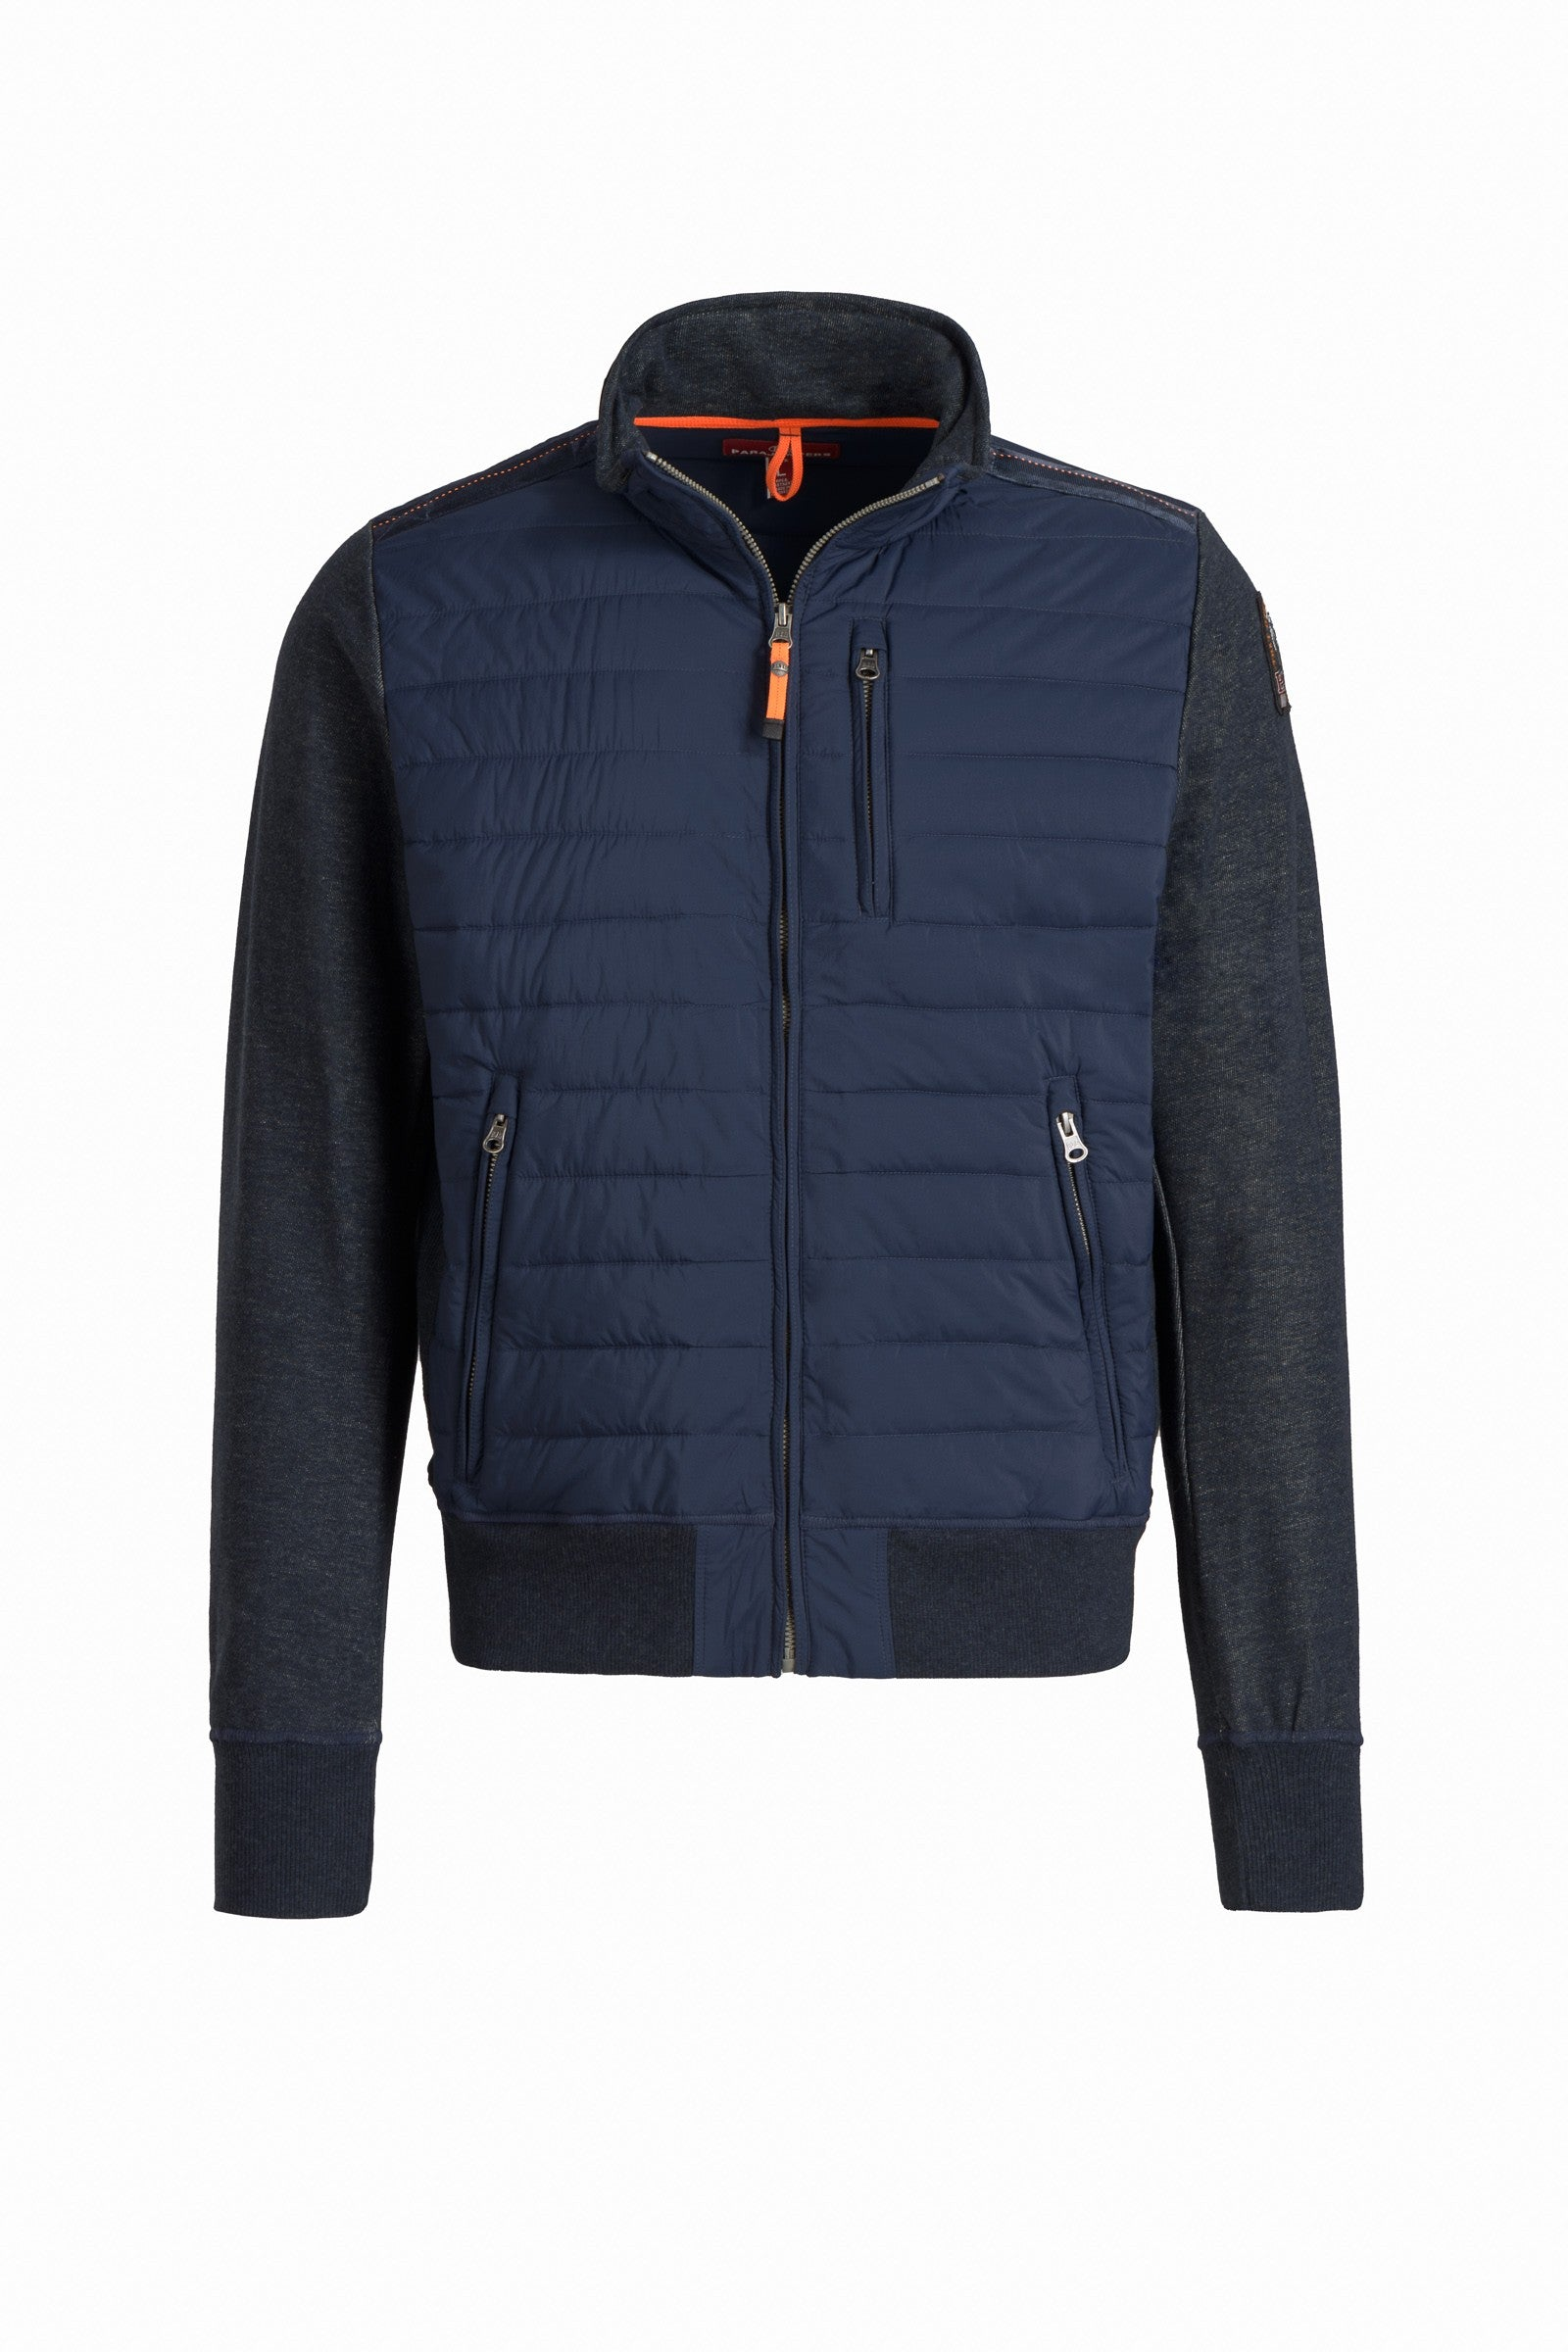 parajumpers elliott